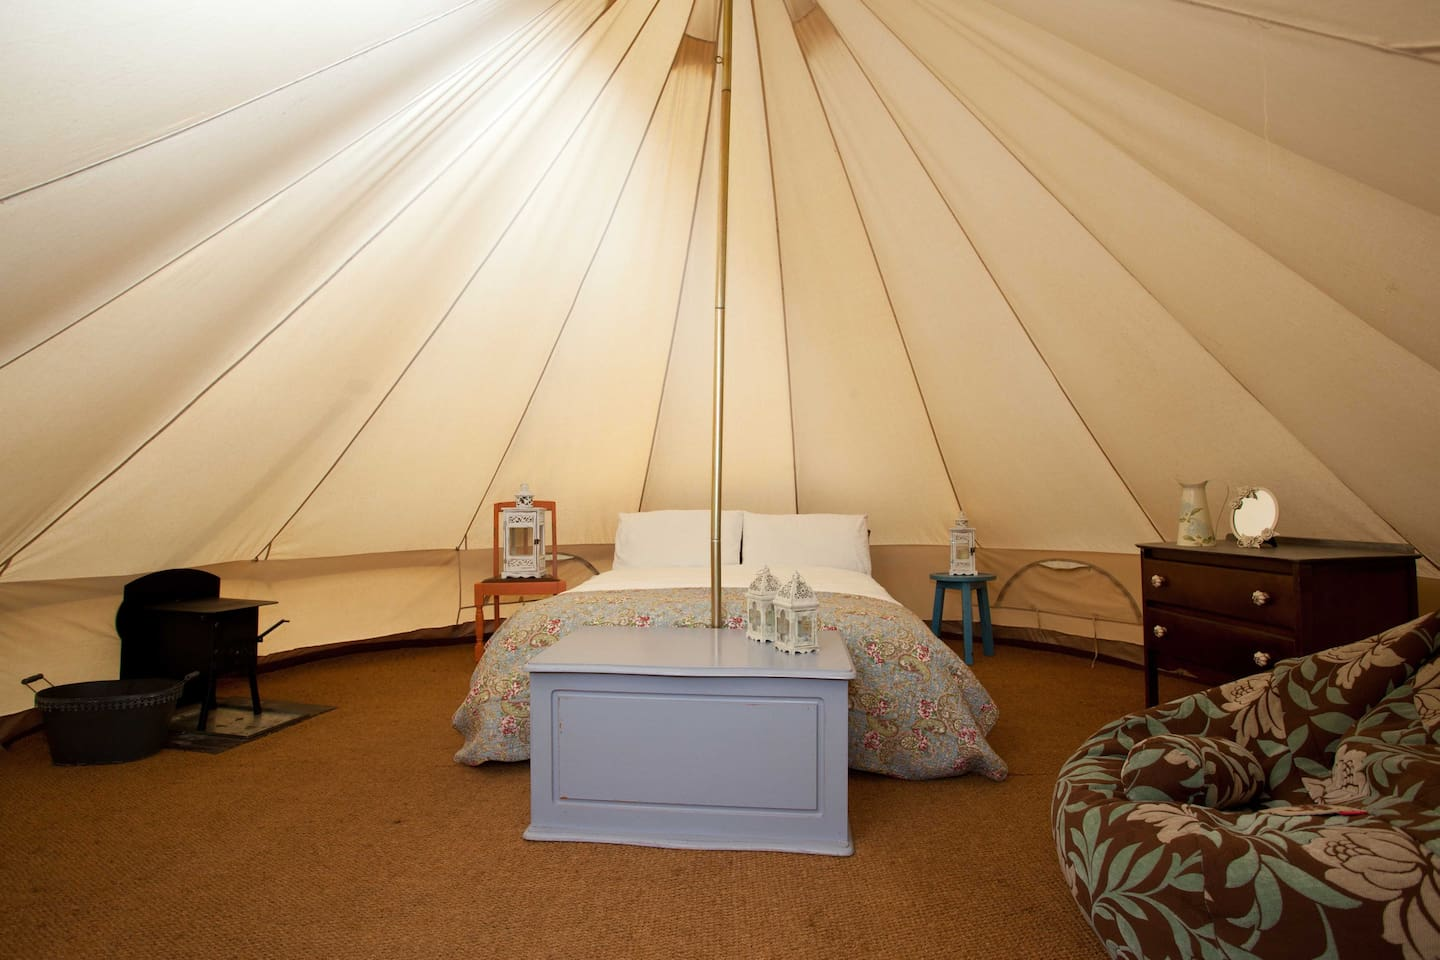 Luxurious Bell Tents to ensure a Unique Experience